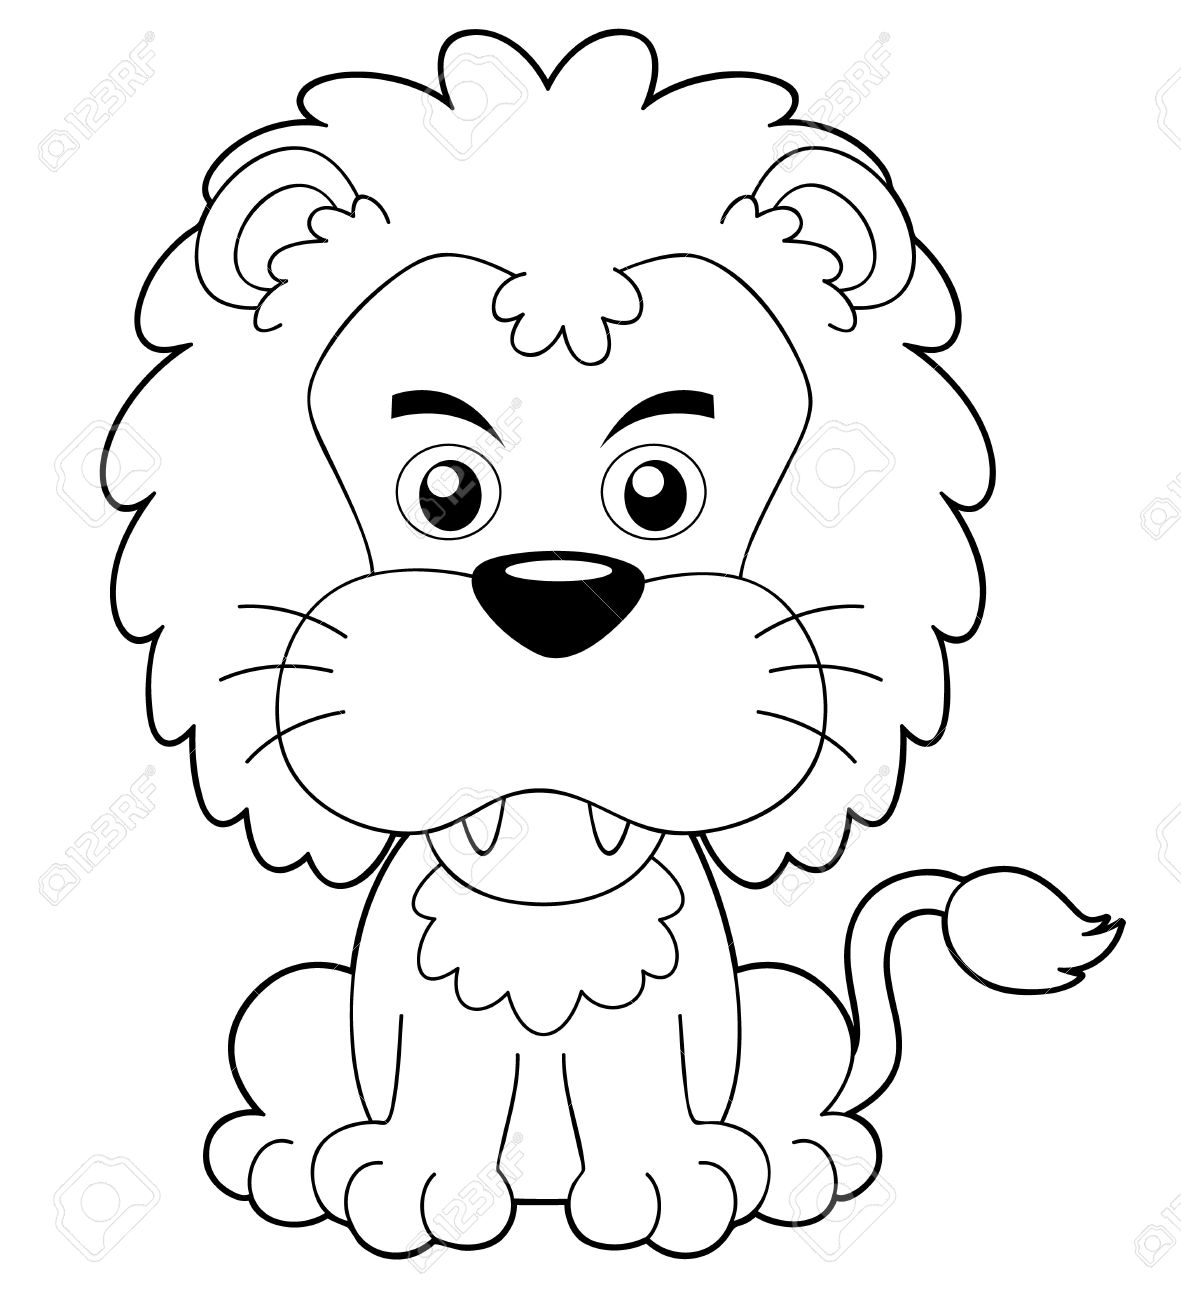 illustration of cartoon lion outline royalty free cliparts